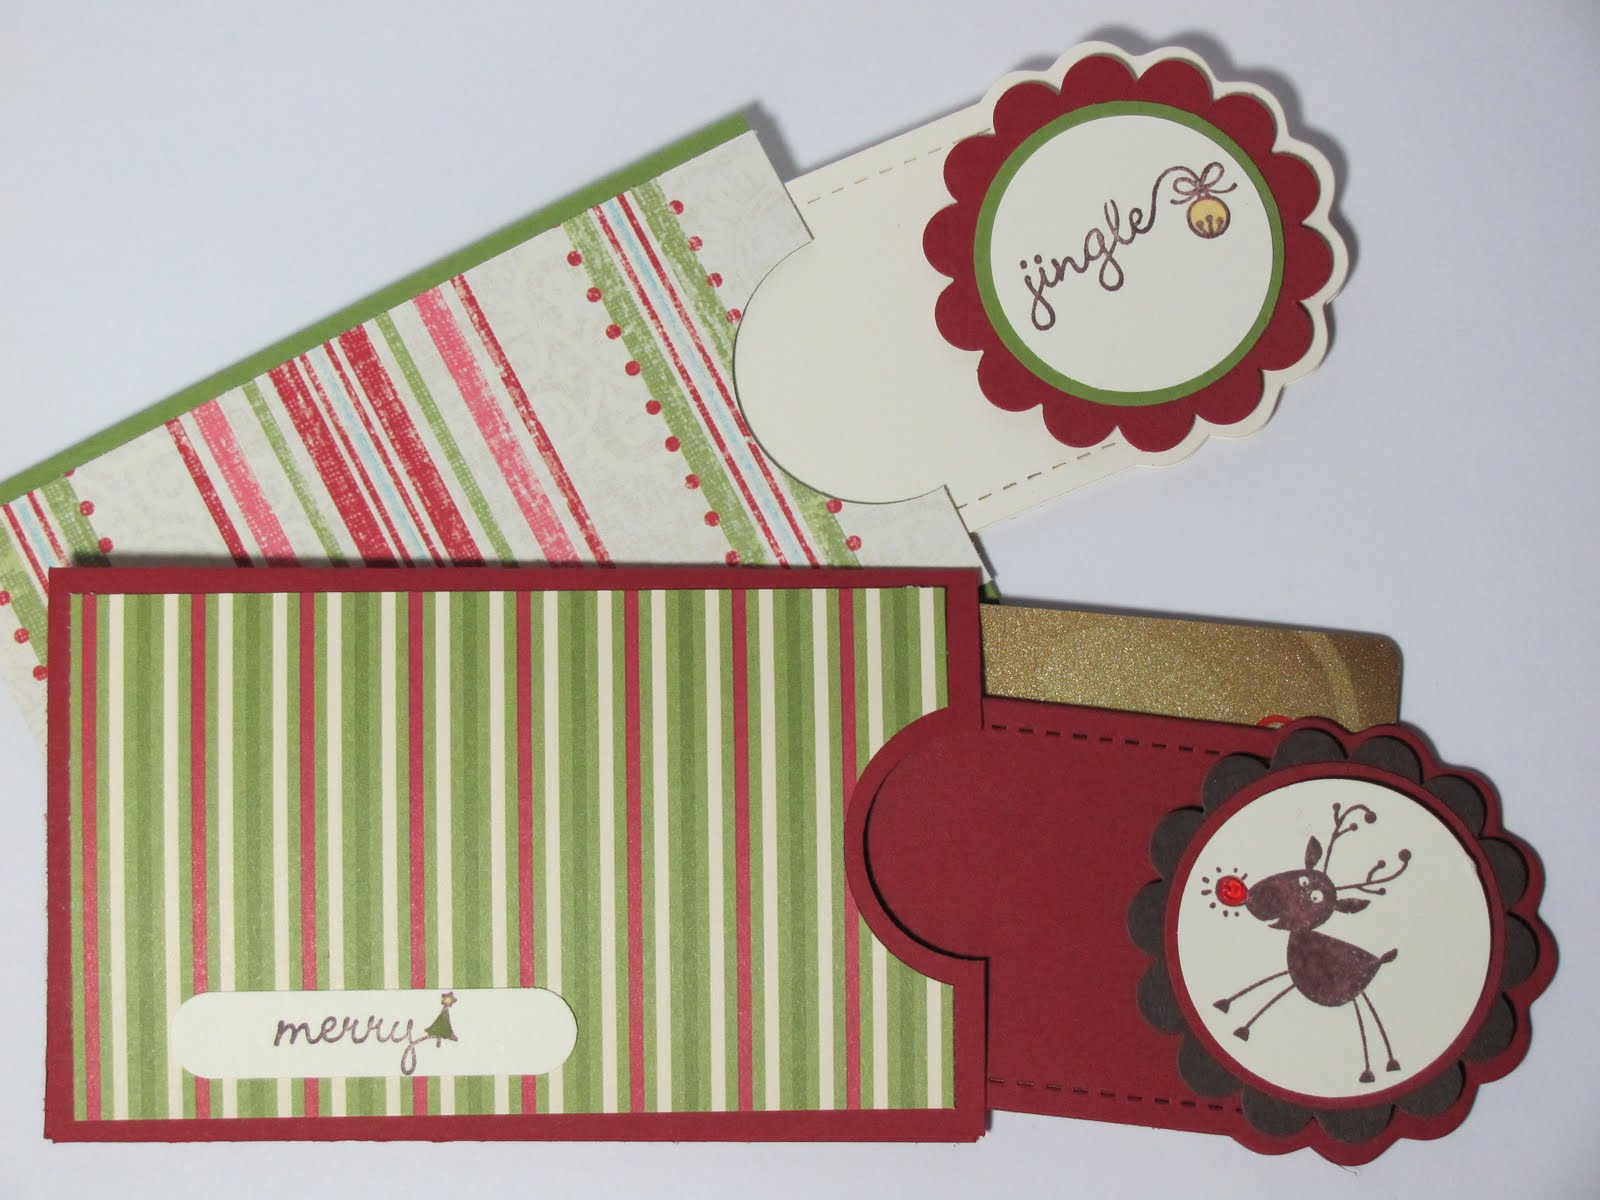 Crafting 4 fun gift card holder sunday december 19 2010 solutioingenieria Image collections